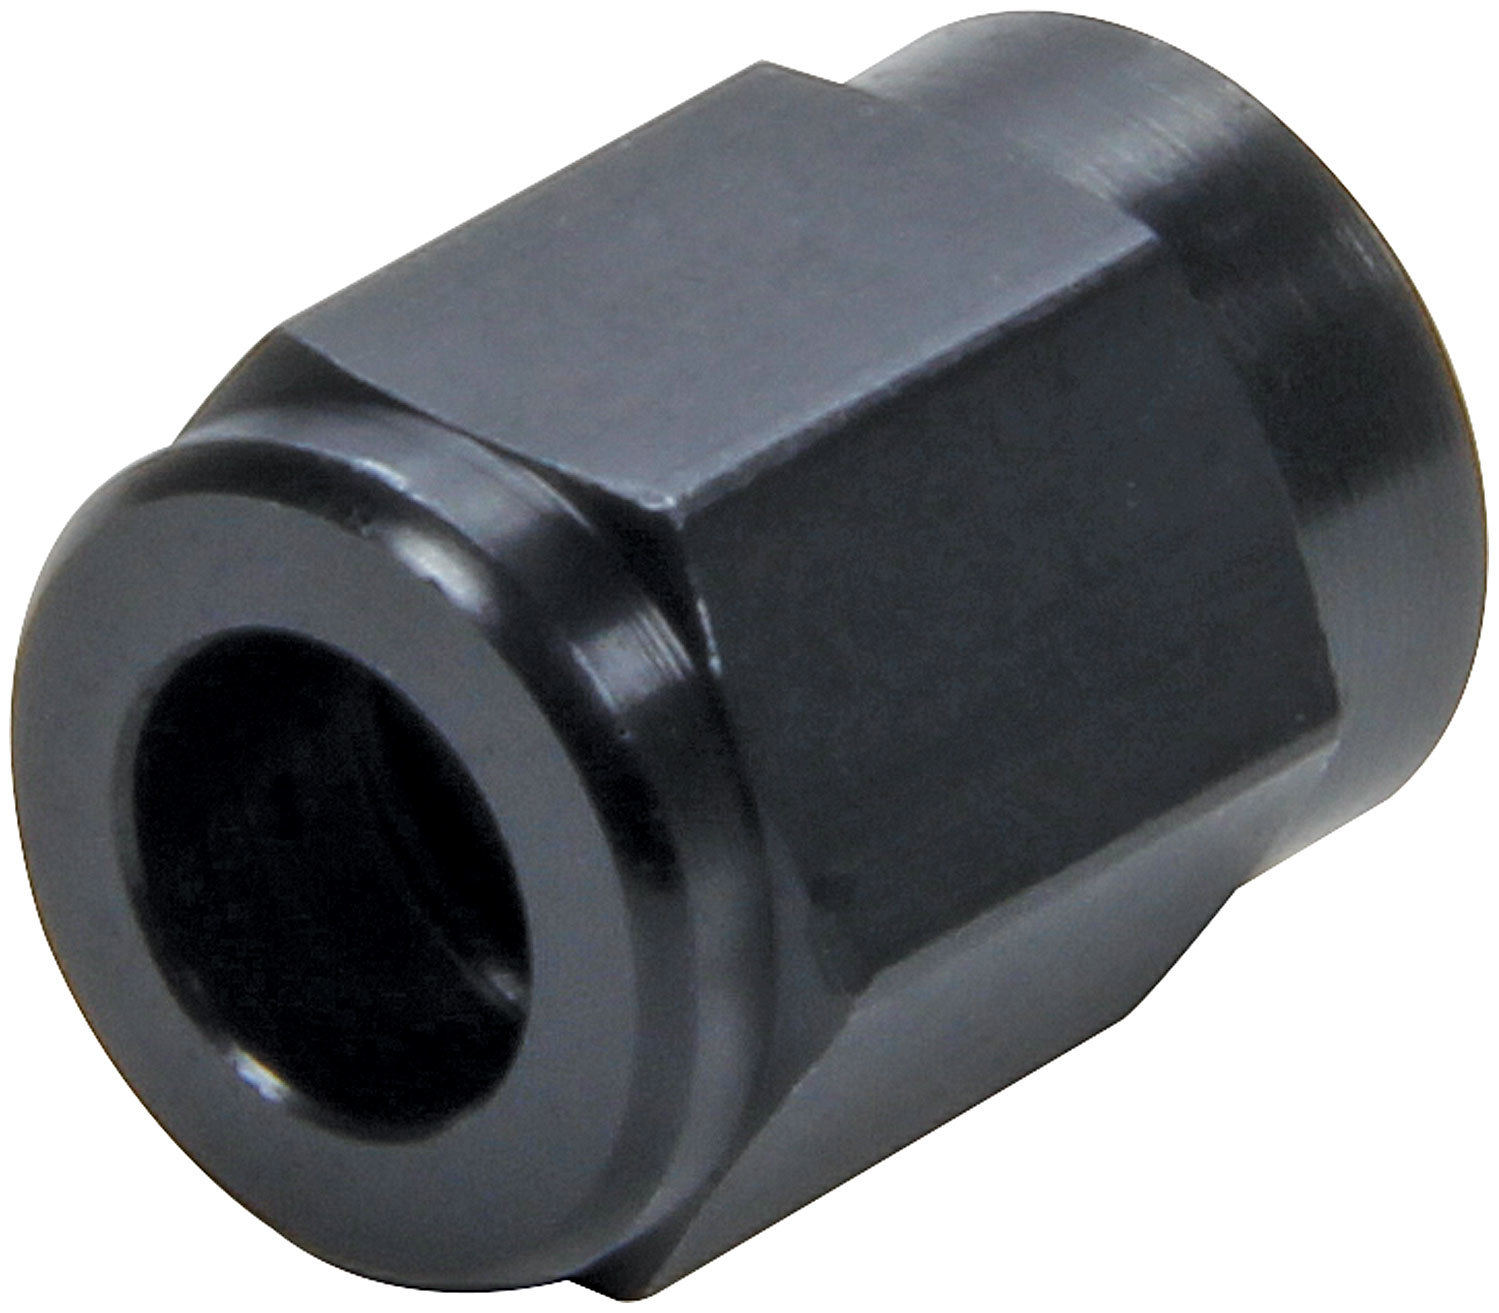 Allstar Performance 50320-20 Fitting, Tube Nut, 3 AN, 3/16 in Tube, Aluminum, Black Anodize, Set of 20